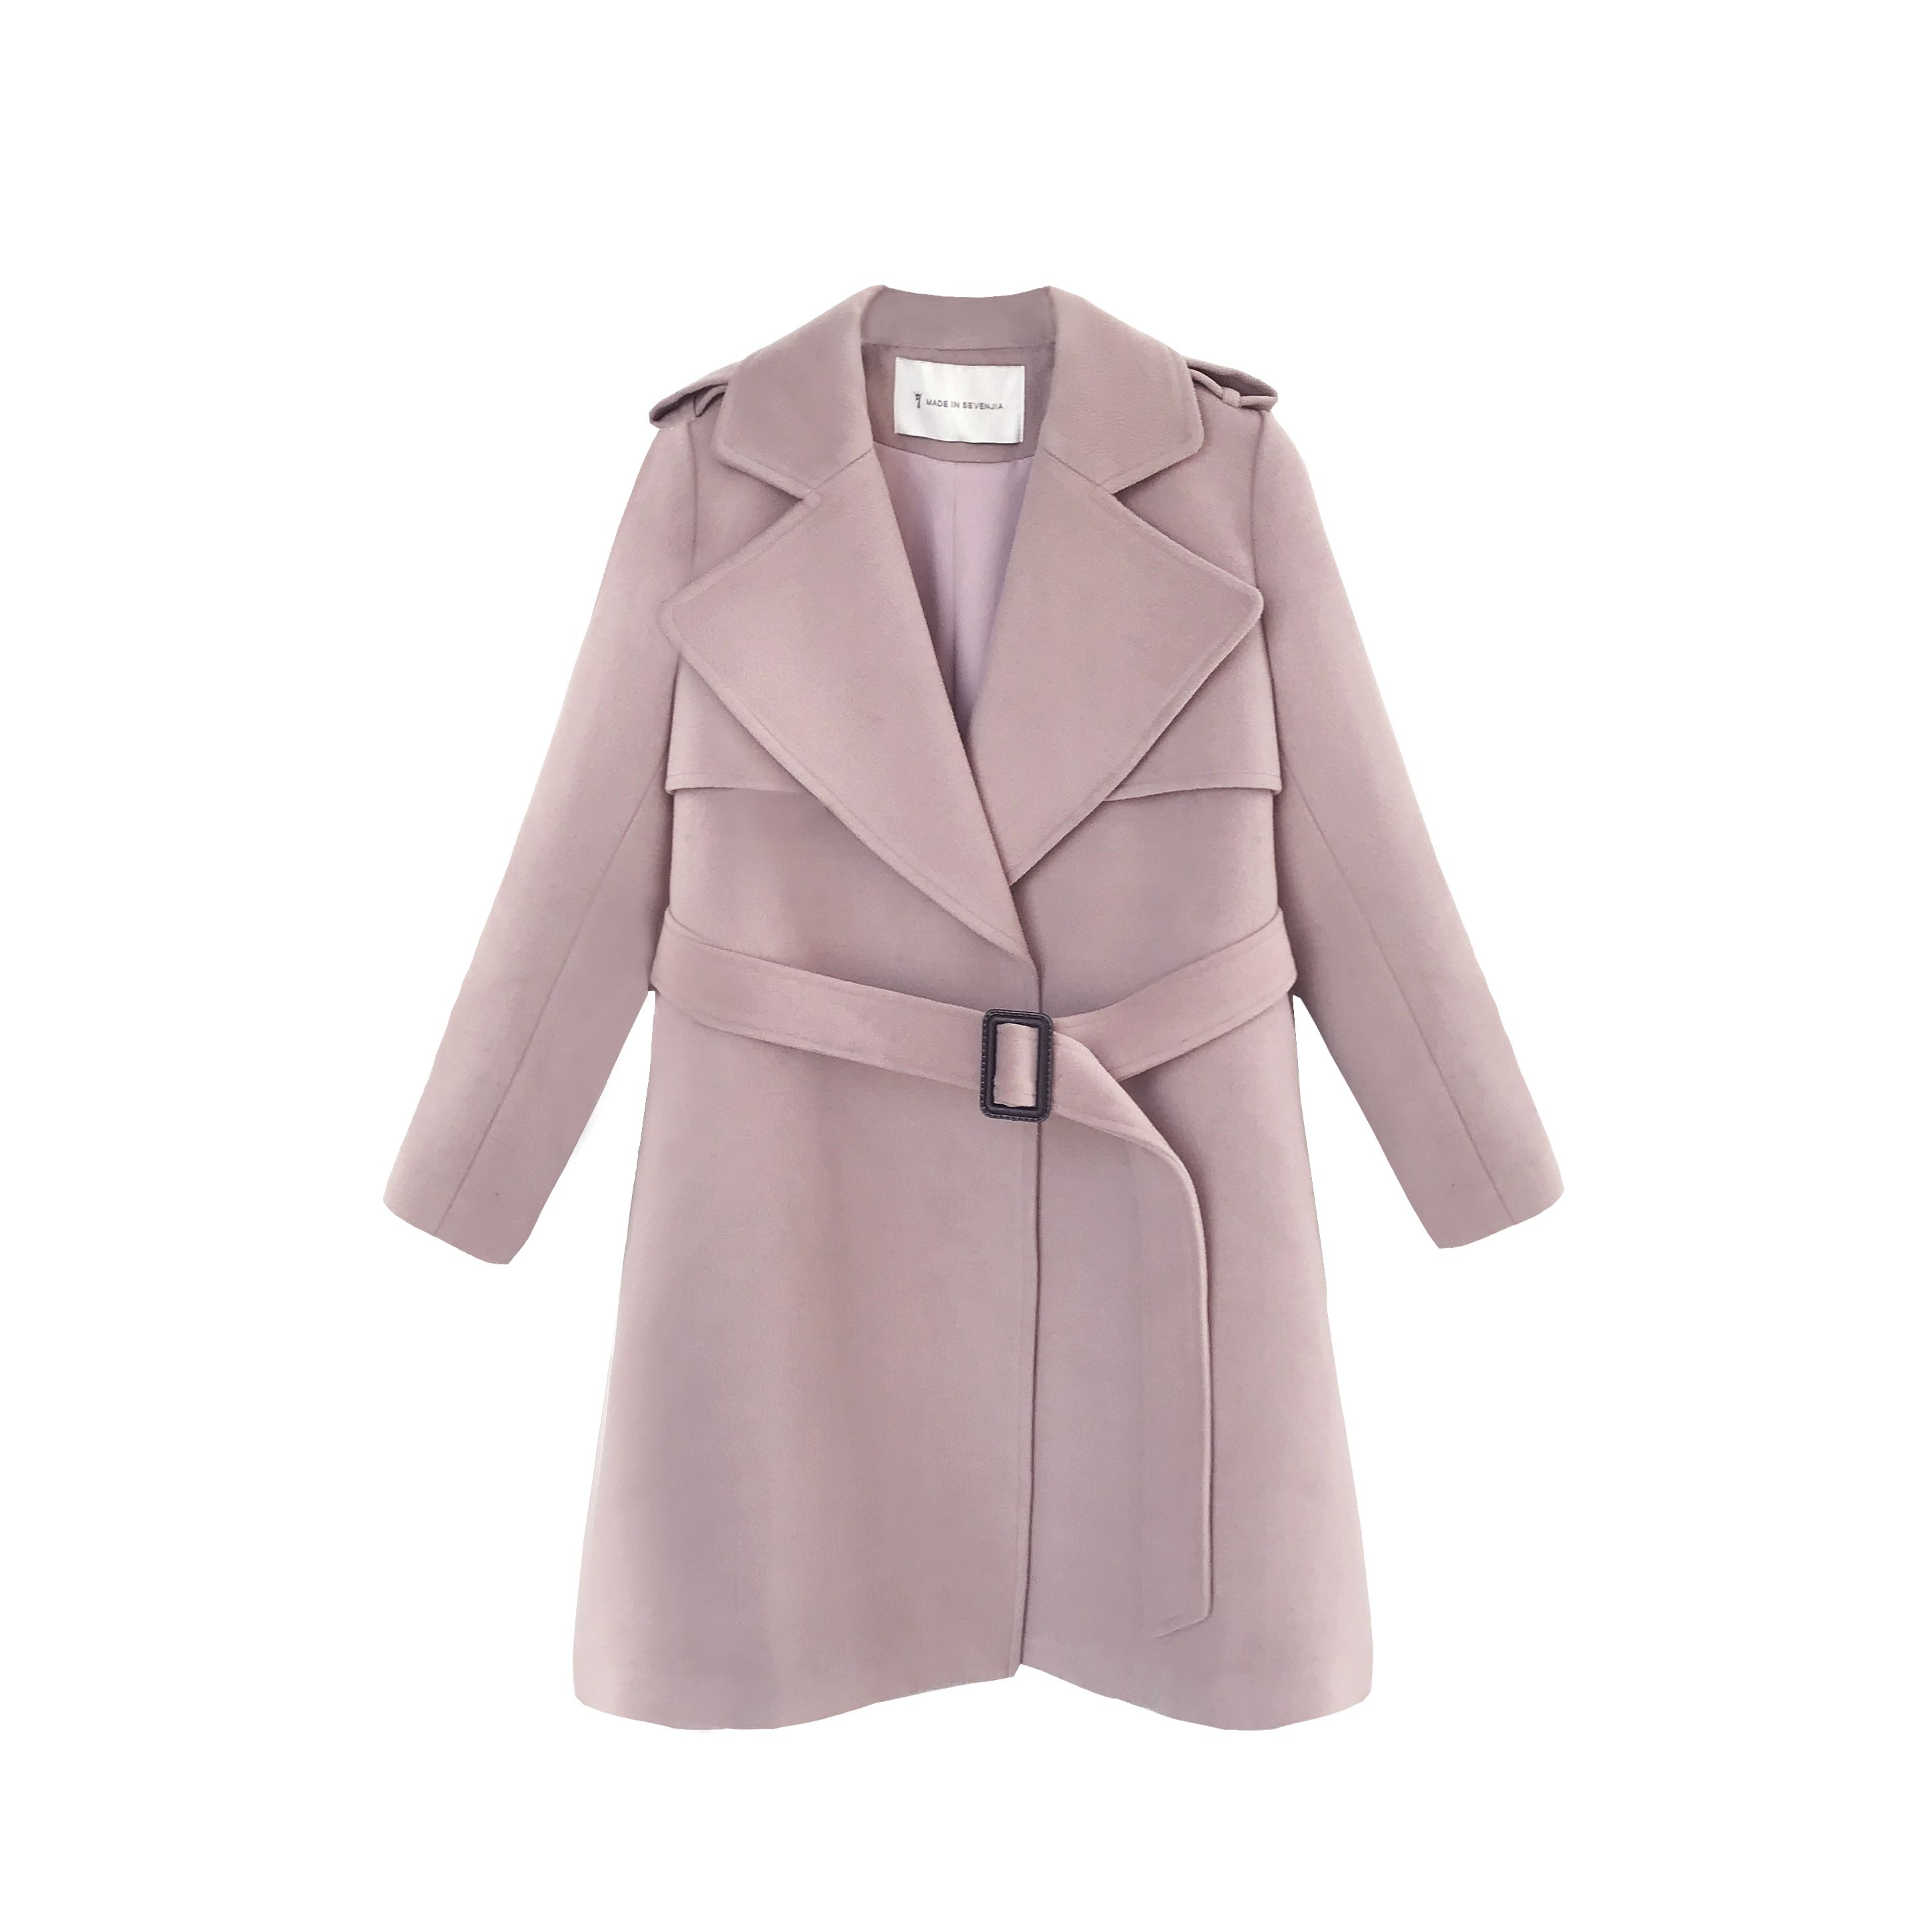 woolen overcoat from wool fabric